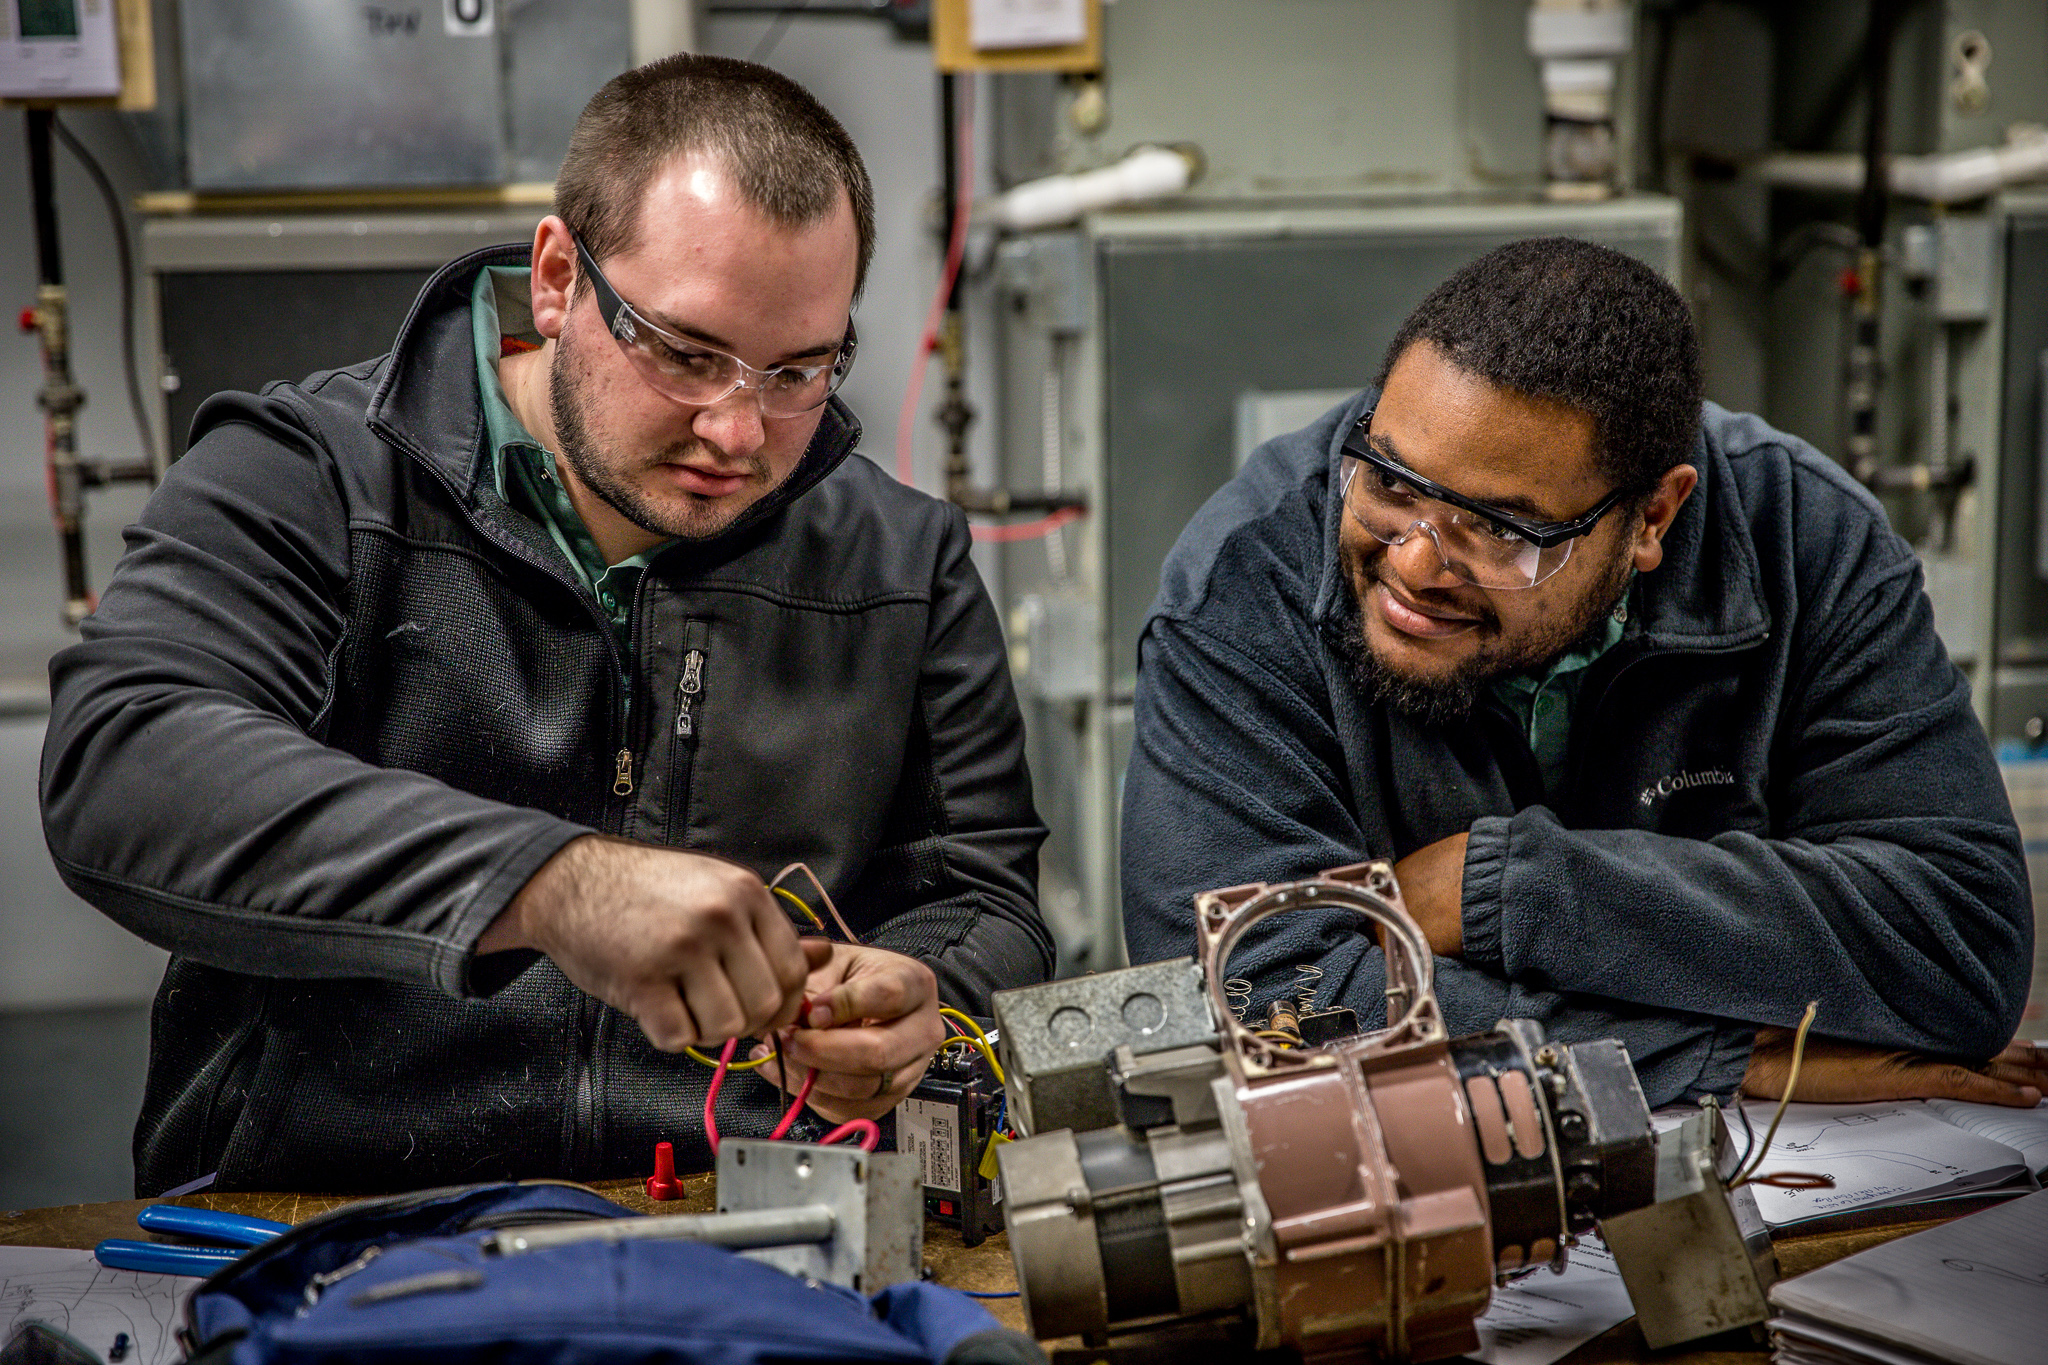 refrigeration repair school | new castle school of trades